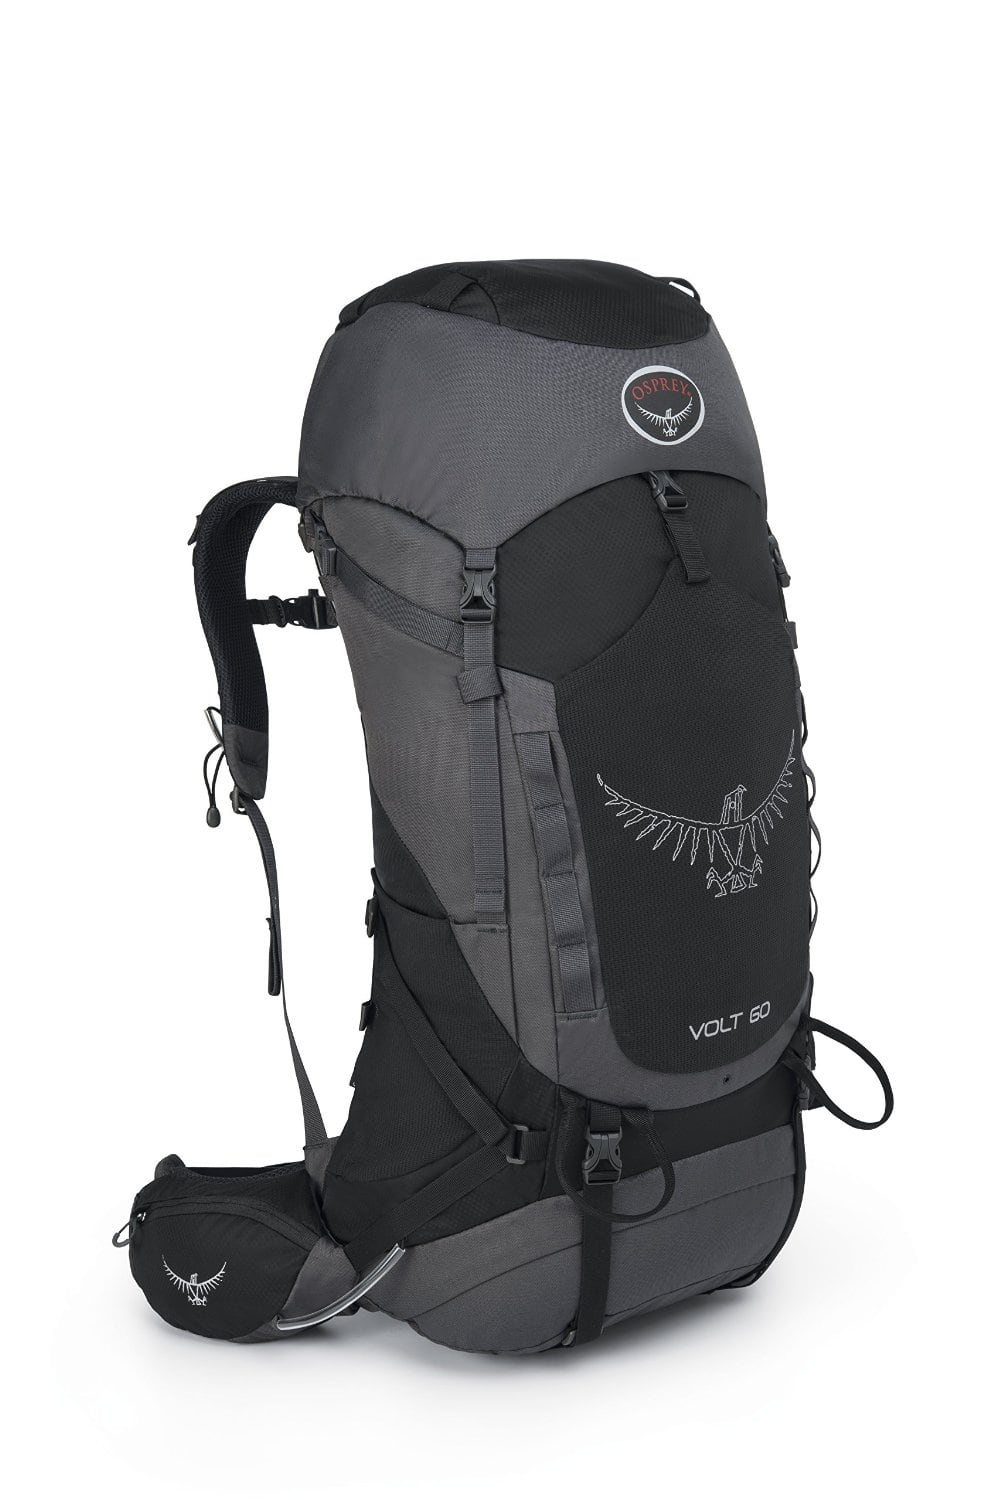 Backpacking pack Osprey Volt 60 Backpack - $114.00 FS